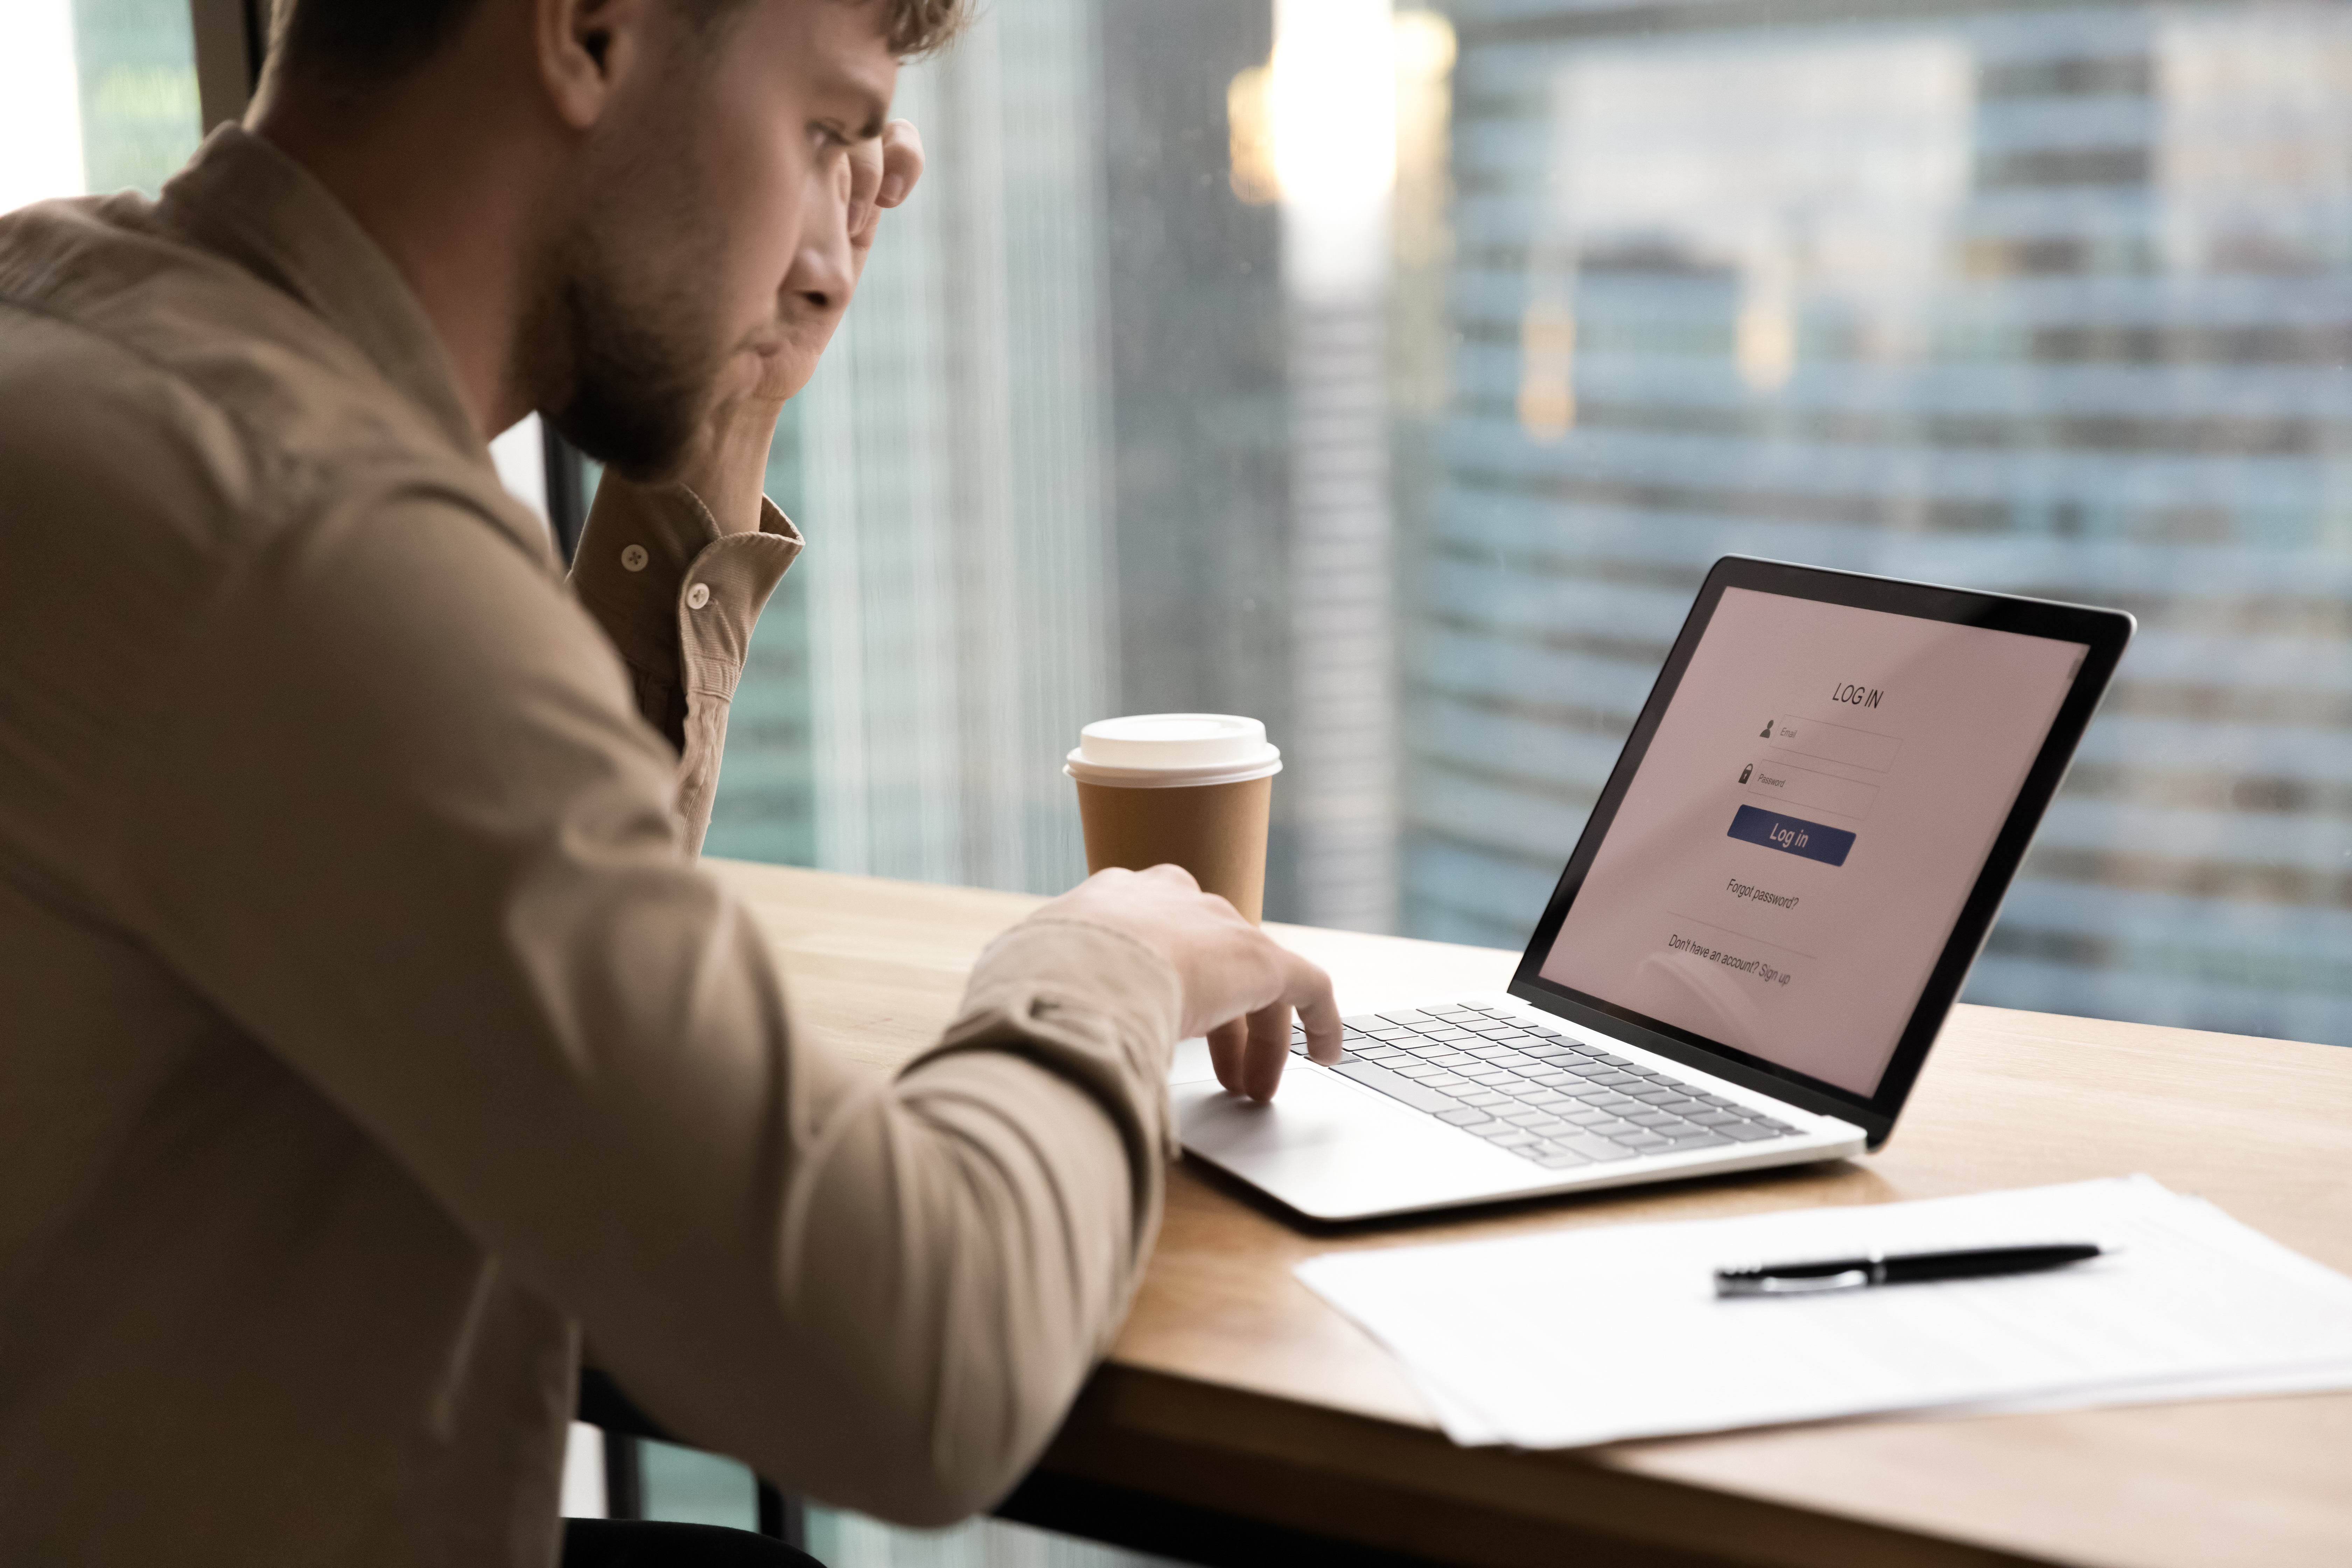 man looking at the login page for SSO